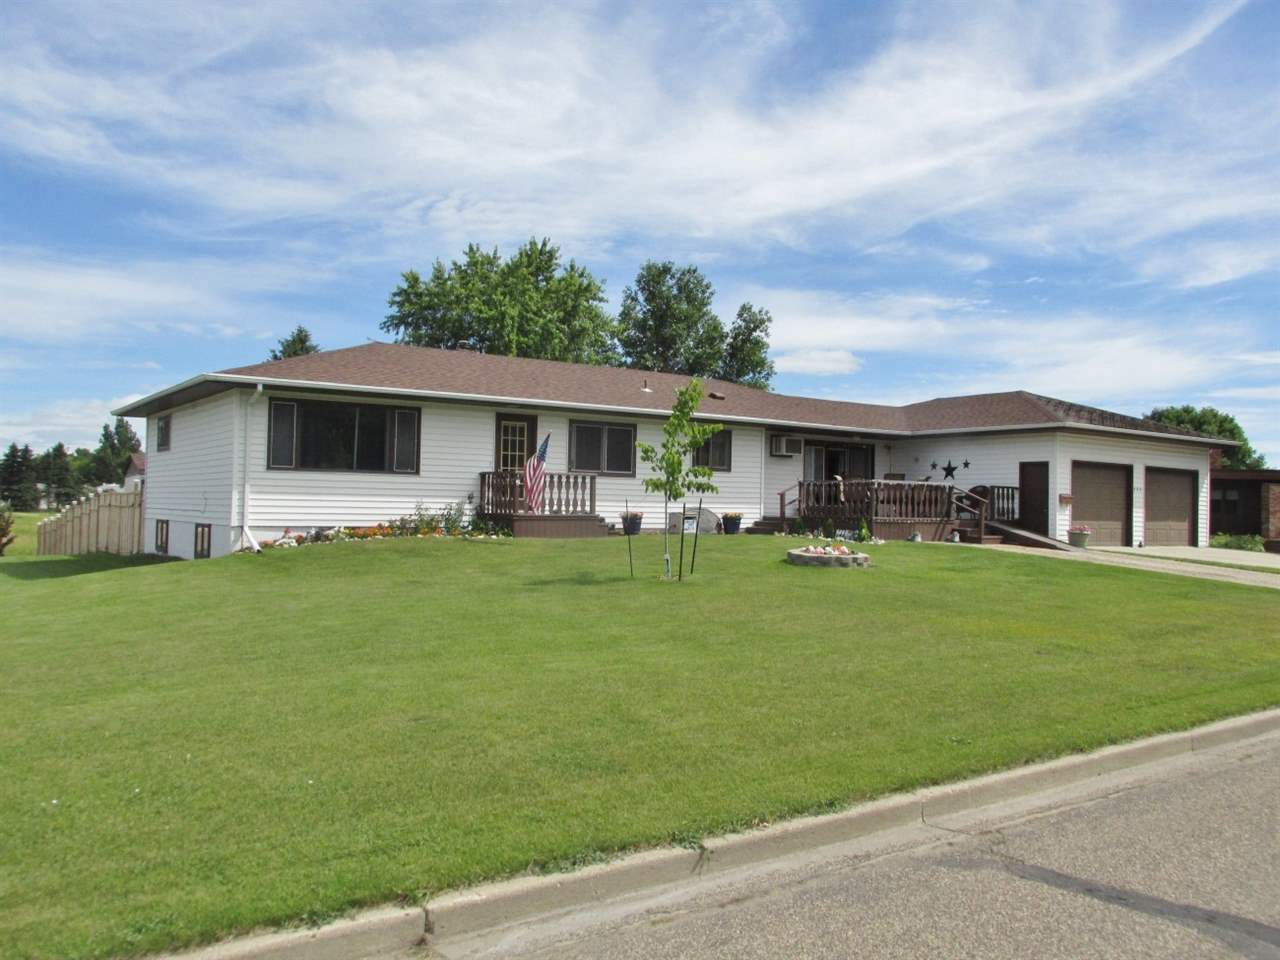 301 SE 9th Street, Rugby, ND 58368